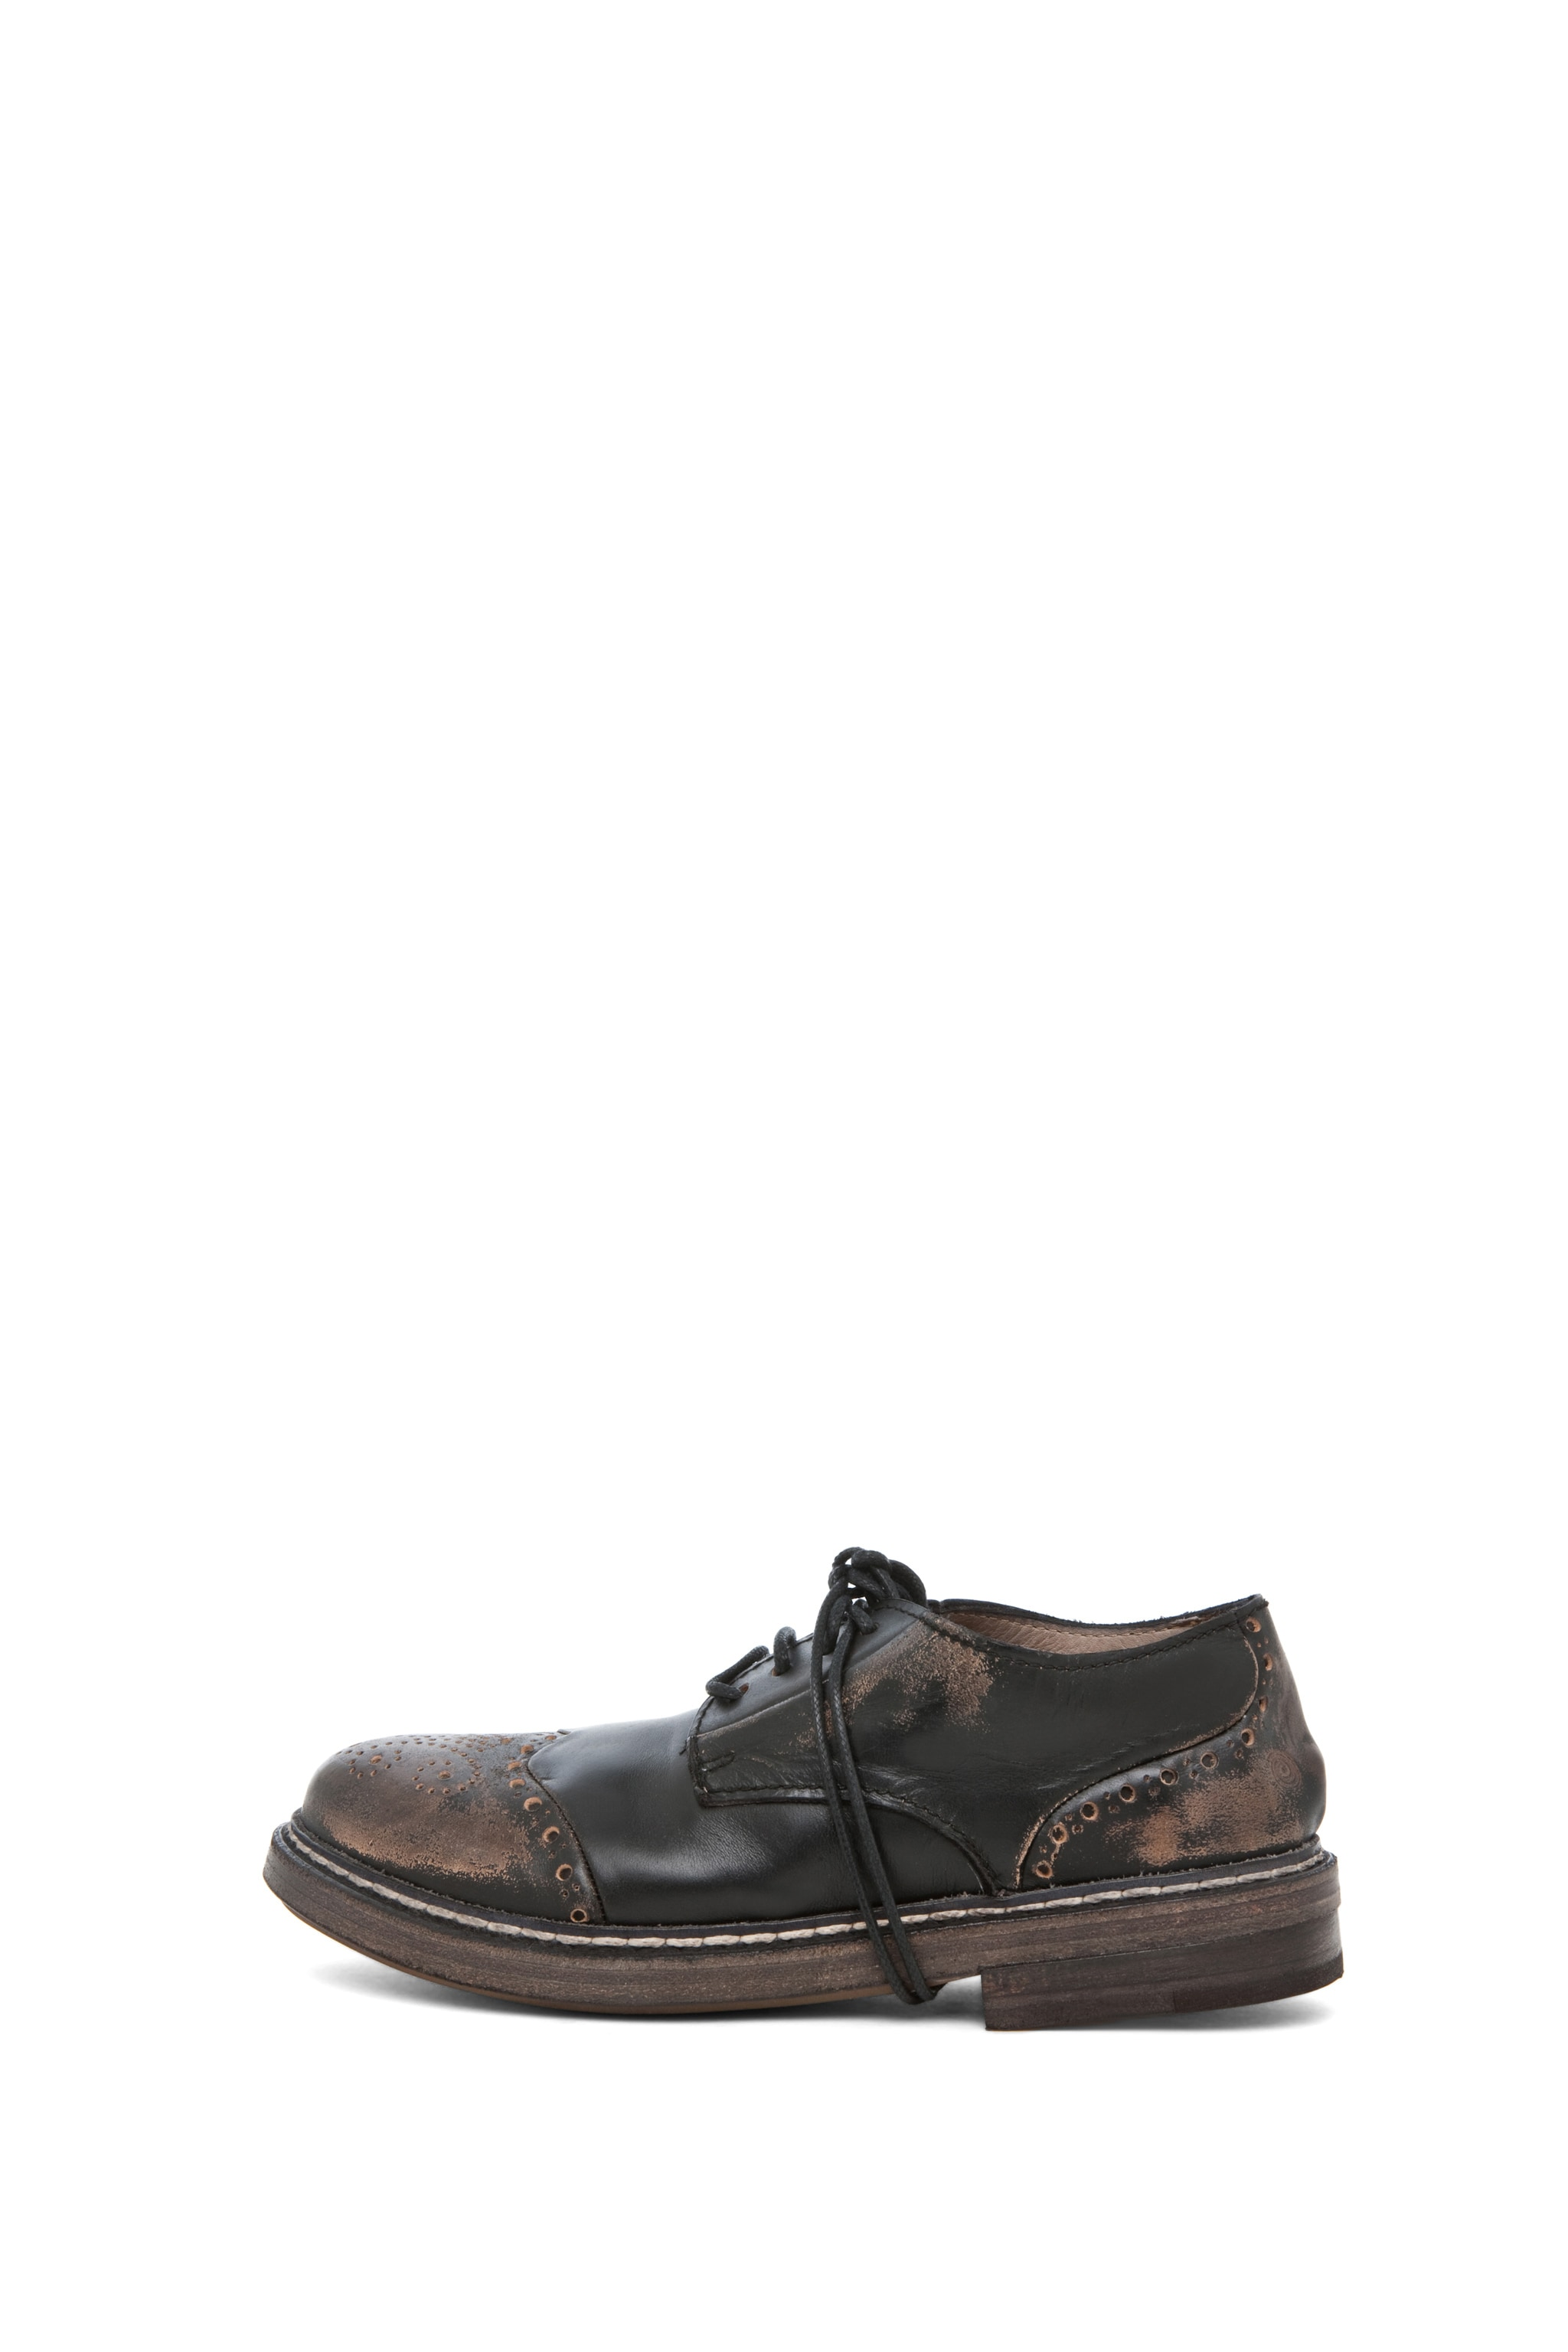 Image 1 of Marsell Gru Oxford in Black